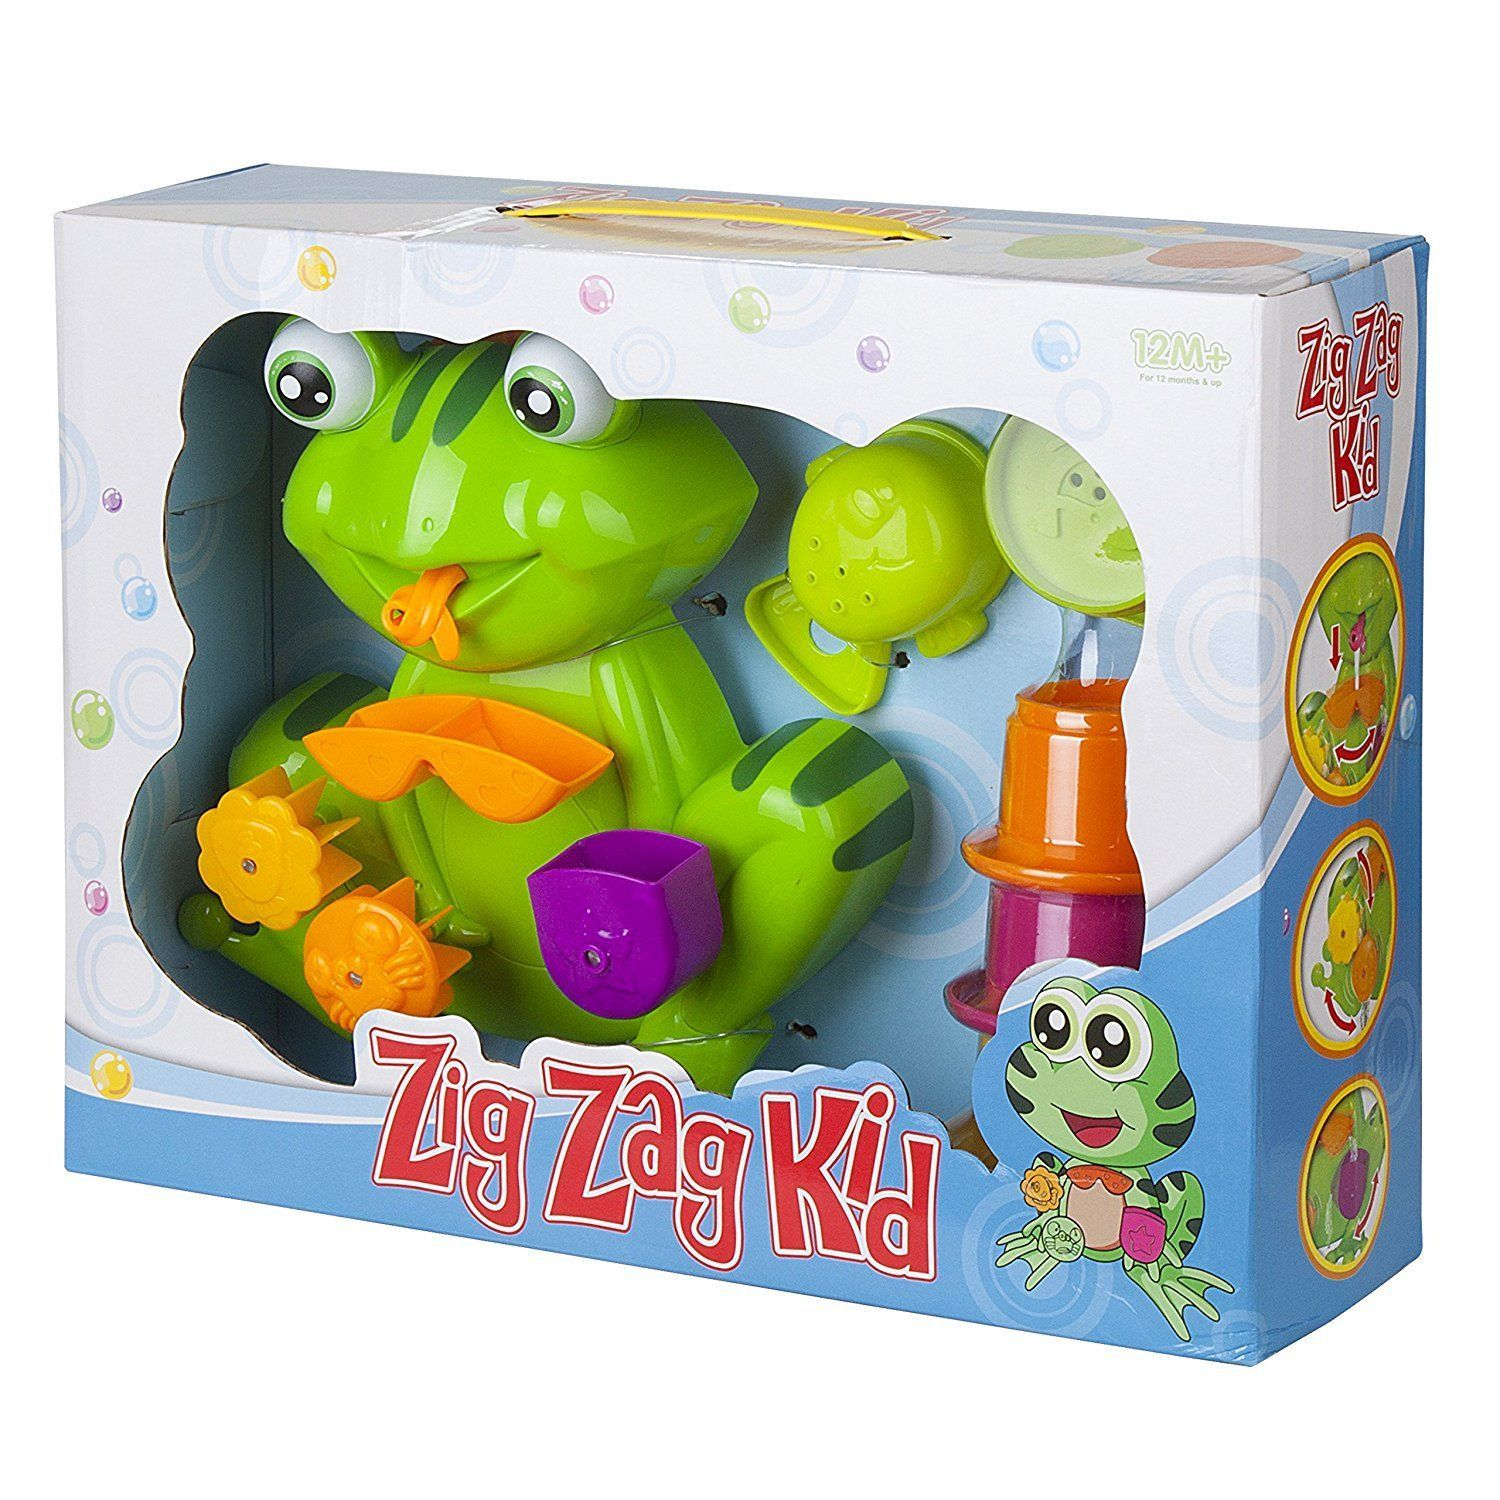 NEW Frog Baby Bath Toys The BEST Toddler Toy Safe Non-toxic By Zig ...